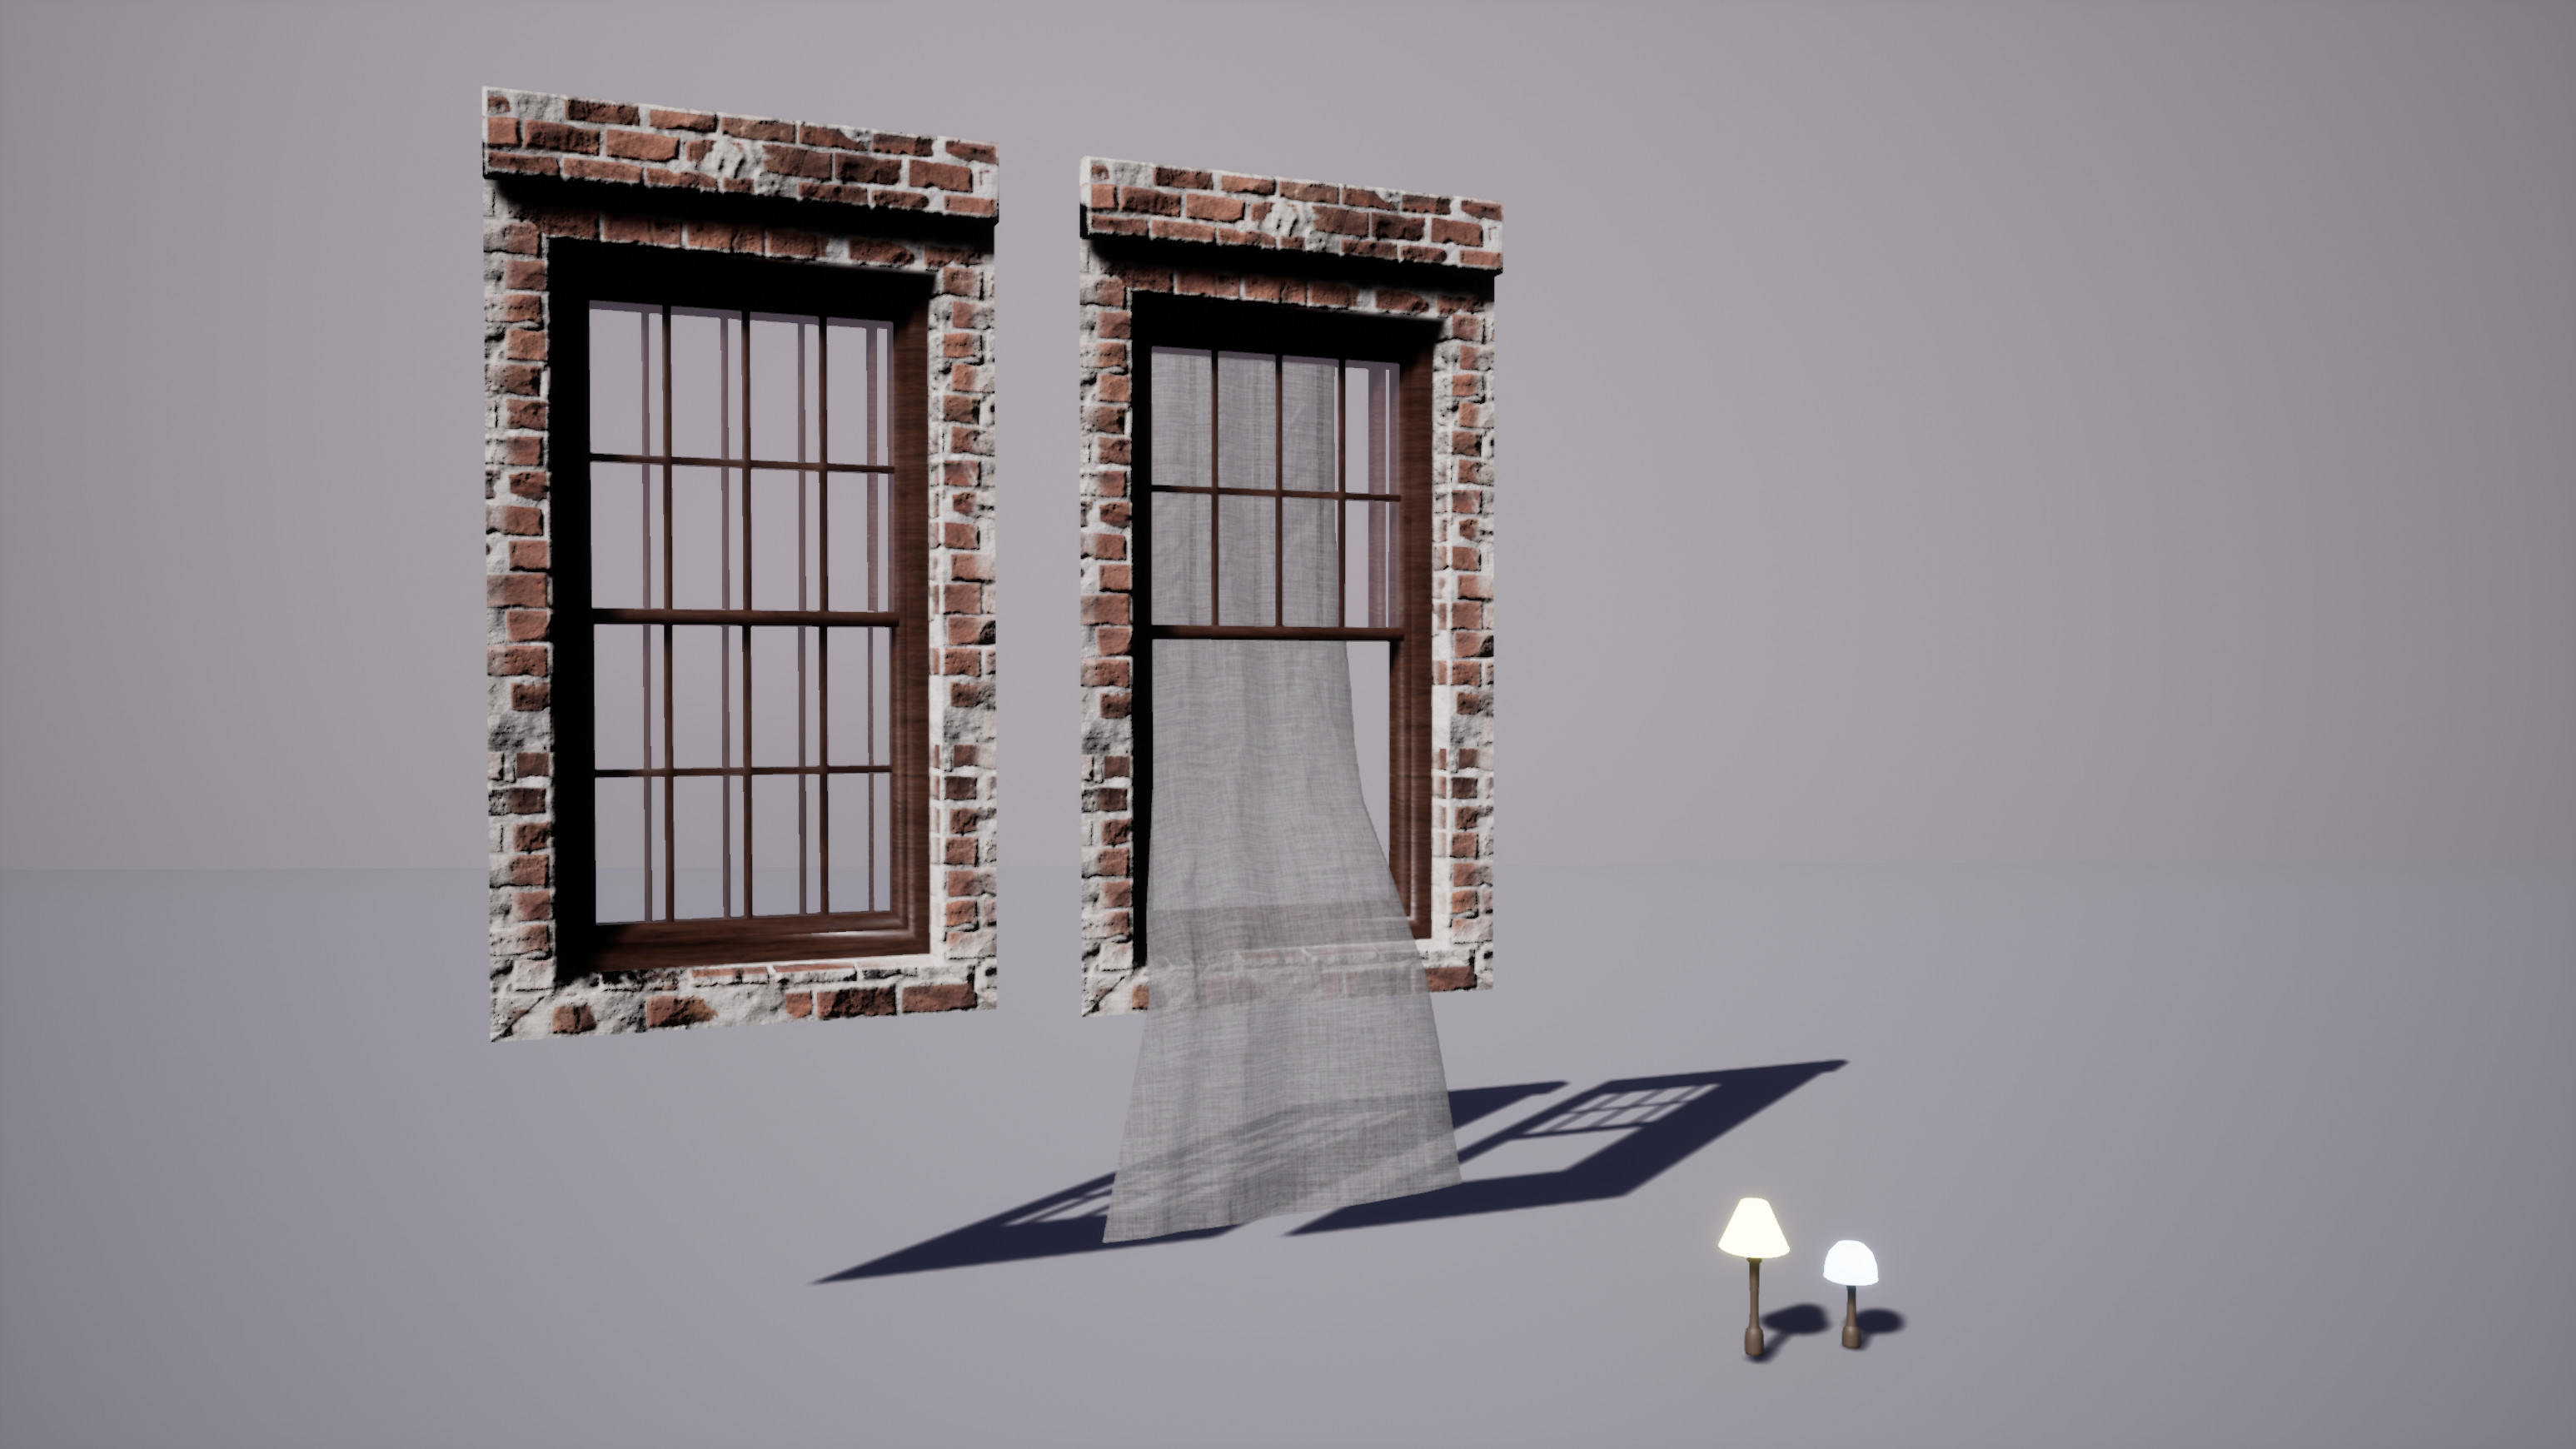 The modular windows of the brick building, and two basic lamps made for the windows.